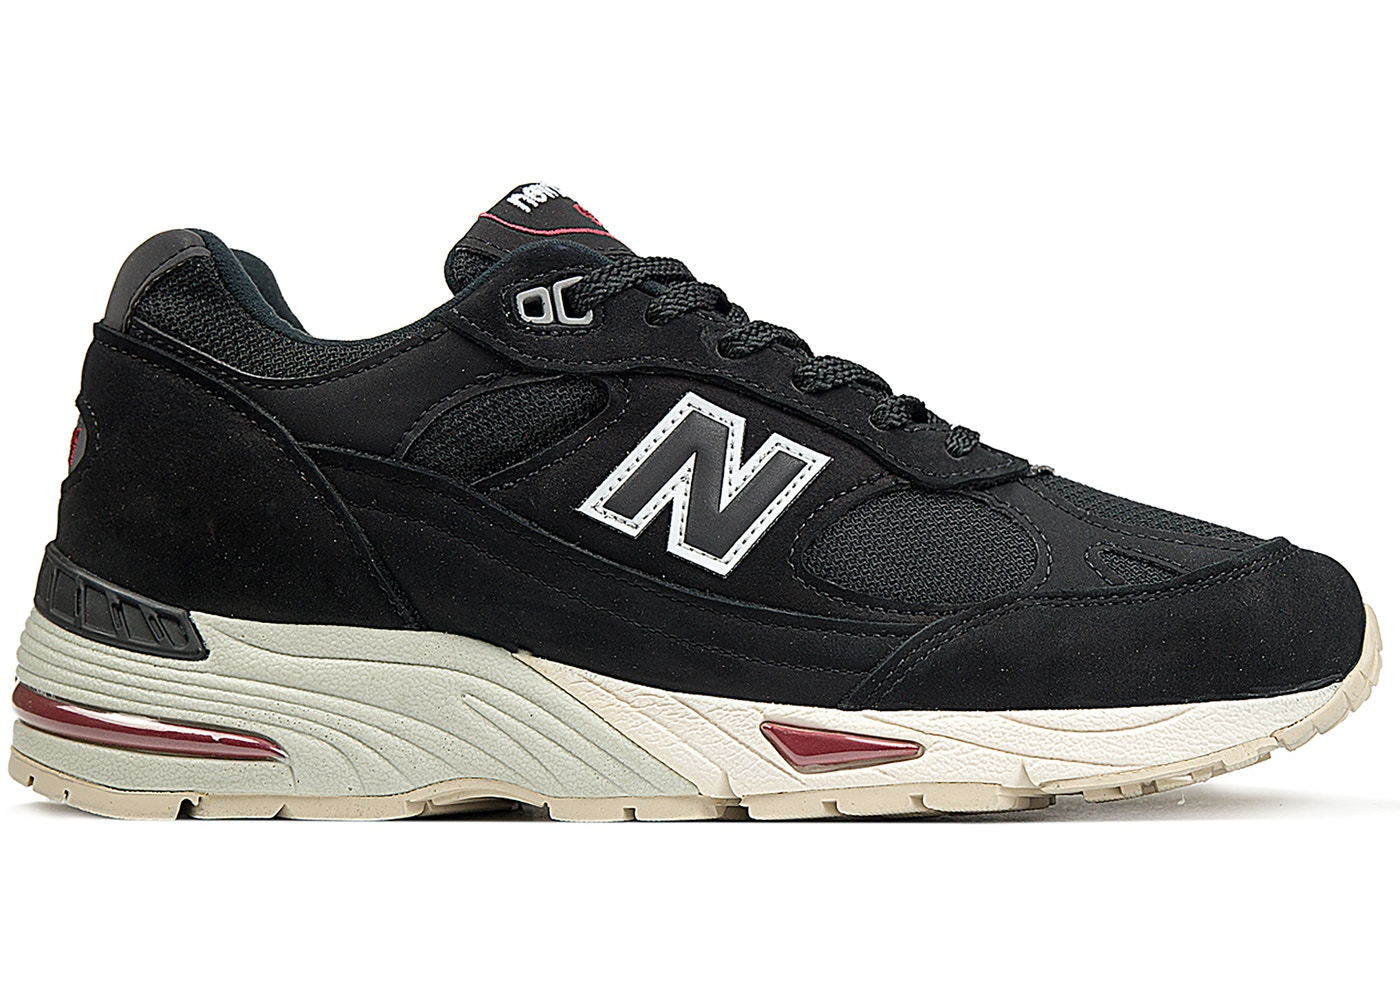 New Balance 991 Made in England Black Red - Sneakers